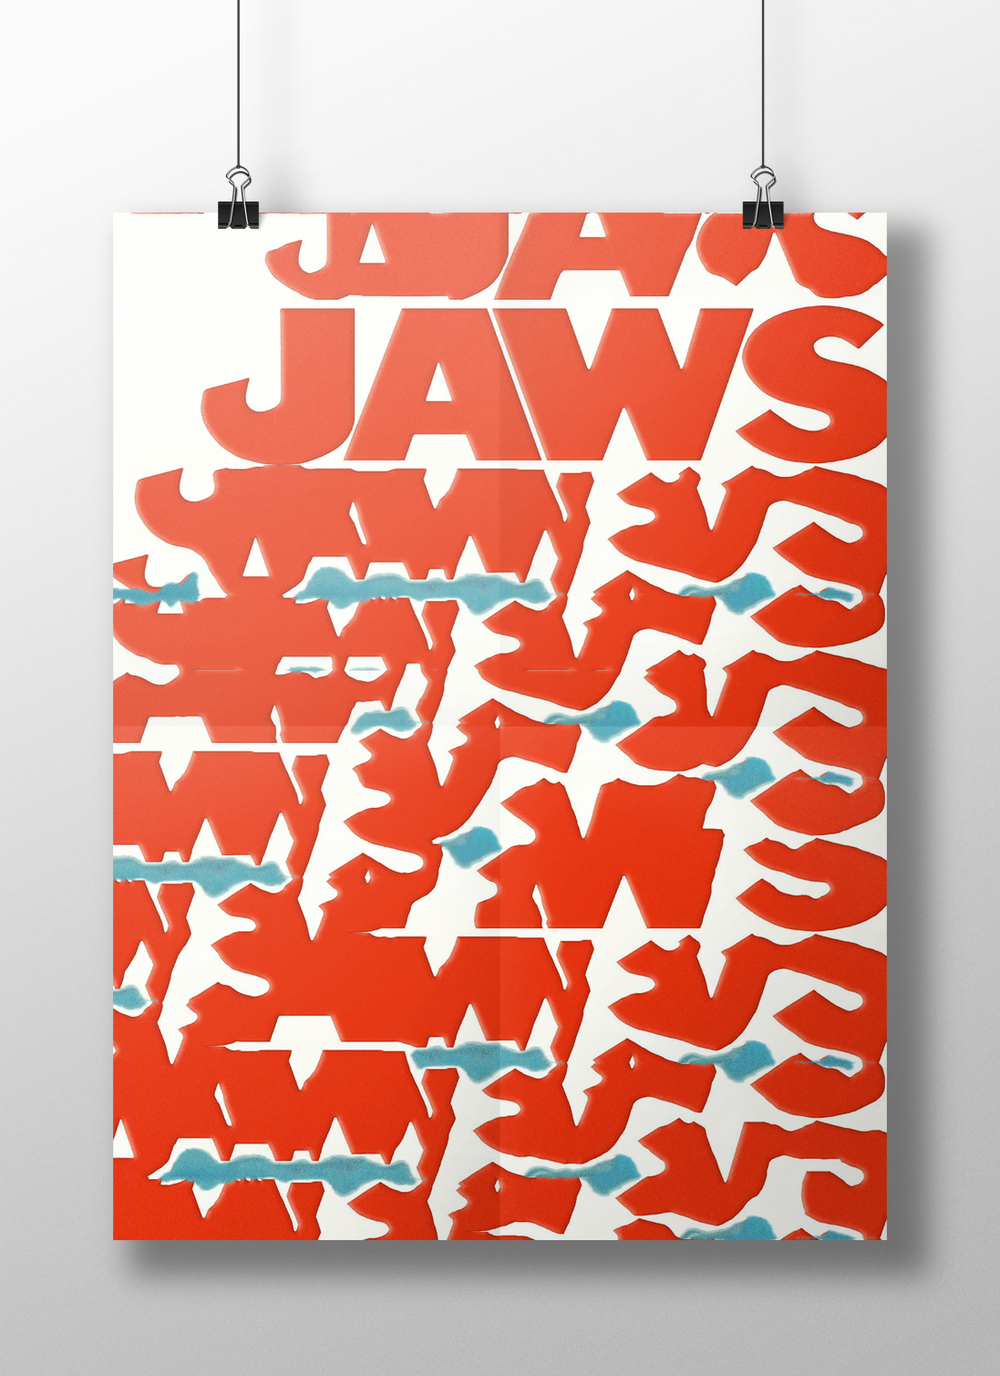 Distorted Typography: Jaws